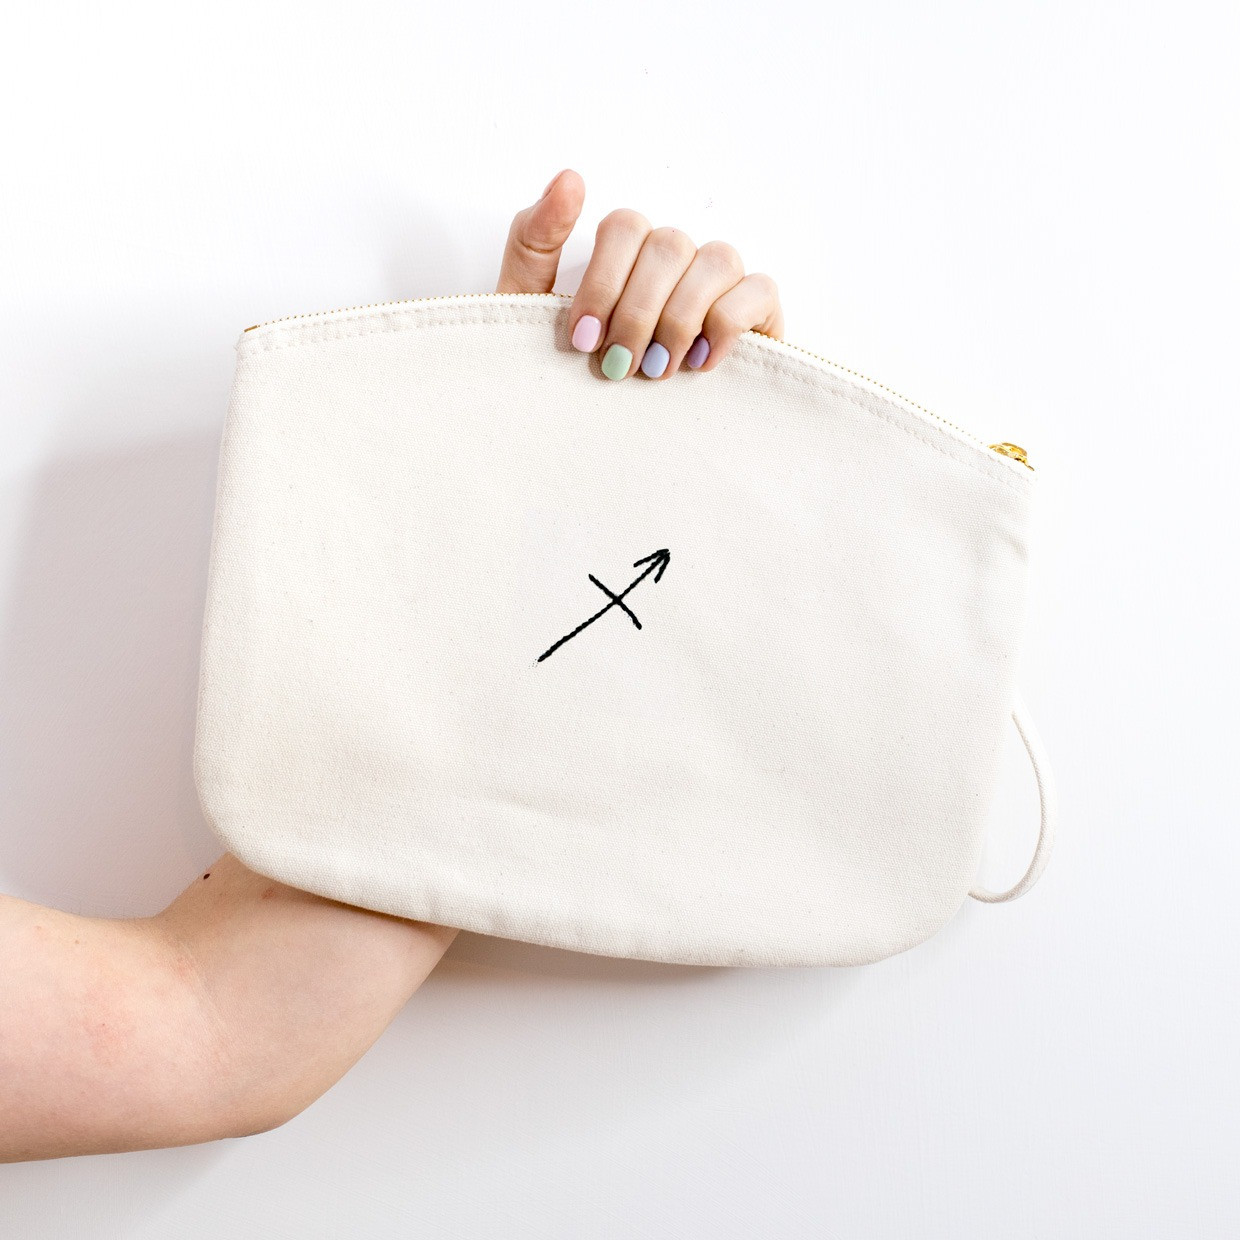 The ZIPPED POUCH L - Sagittario